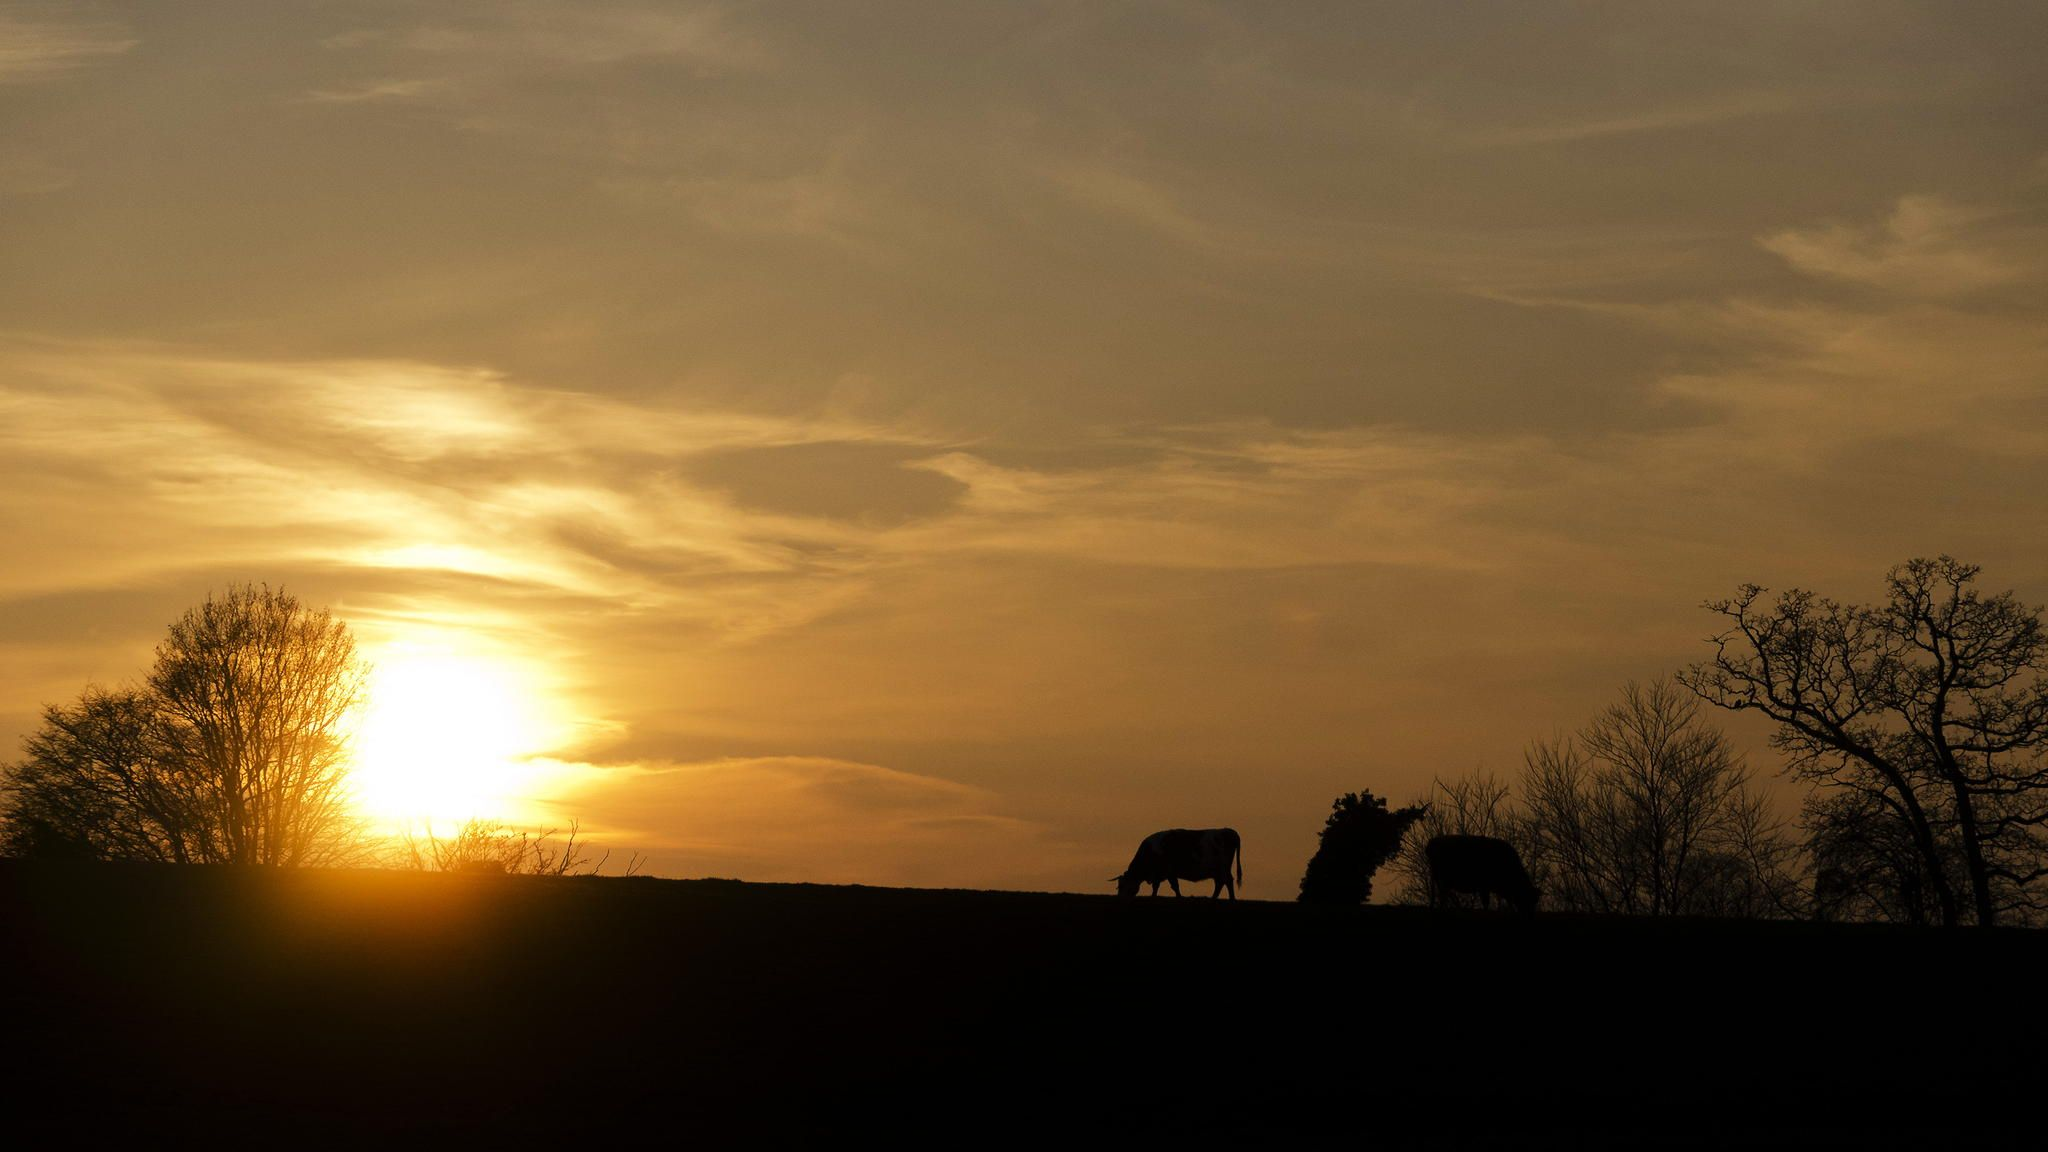 Normandy Sunset by Nathalie  on 500px